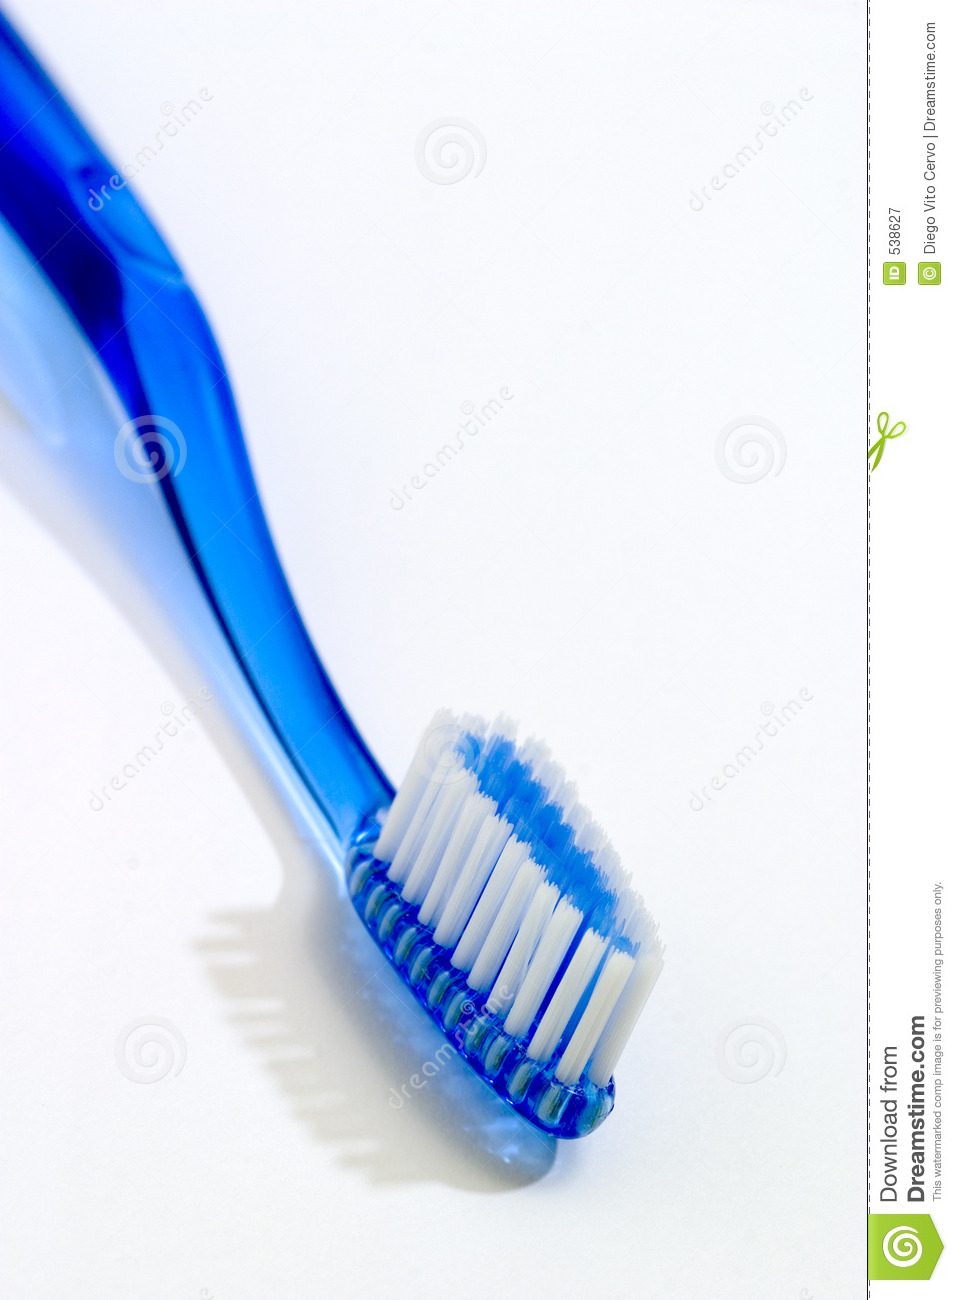 Toothbrushes05